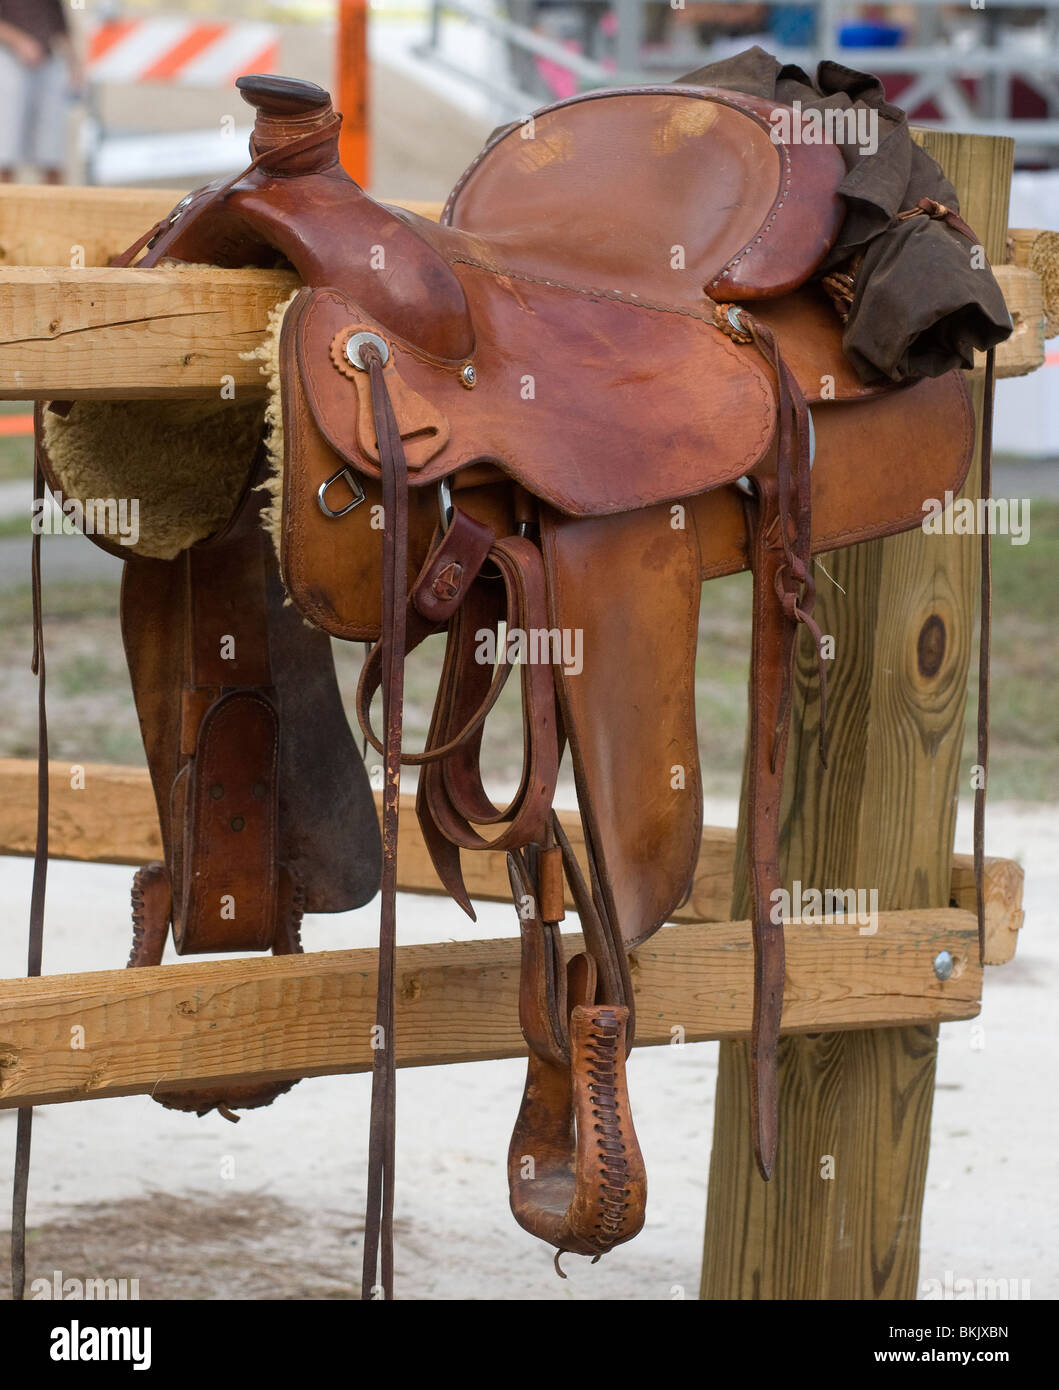 western saddle sits atop wooden fence during Pioneer Days High Springs Florida - Stock Image